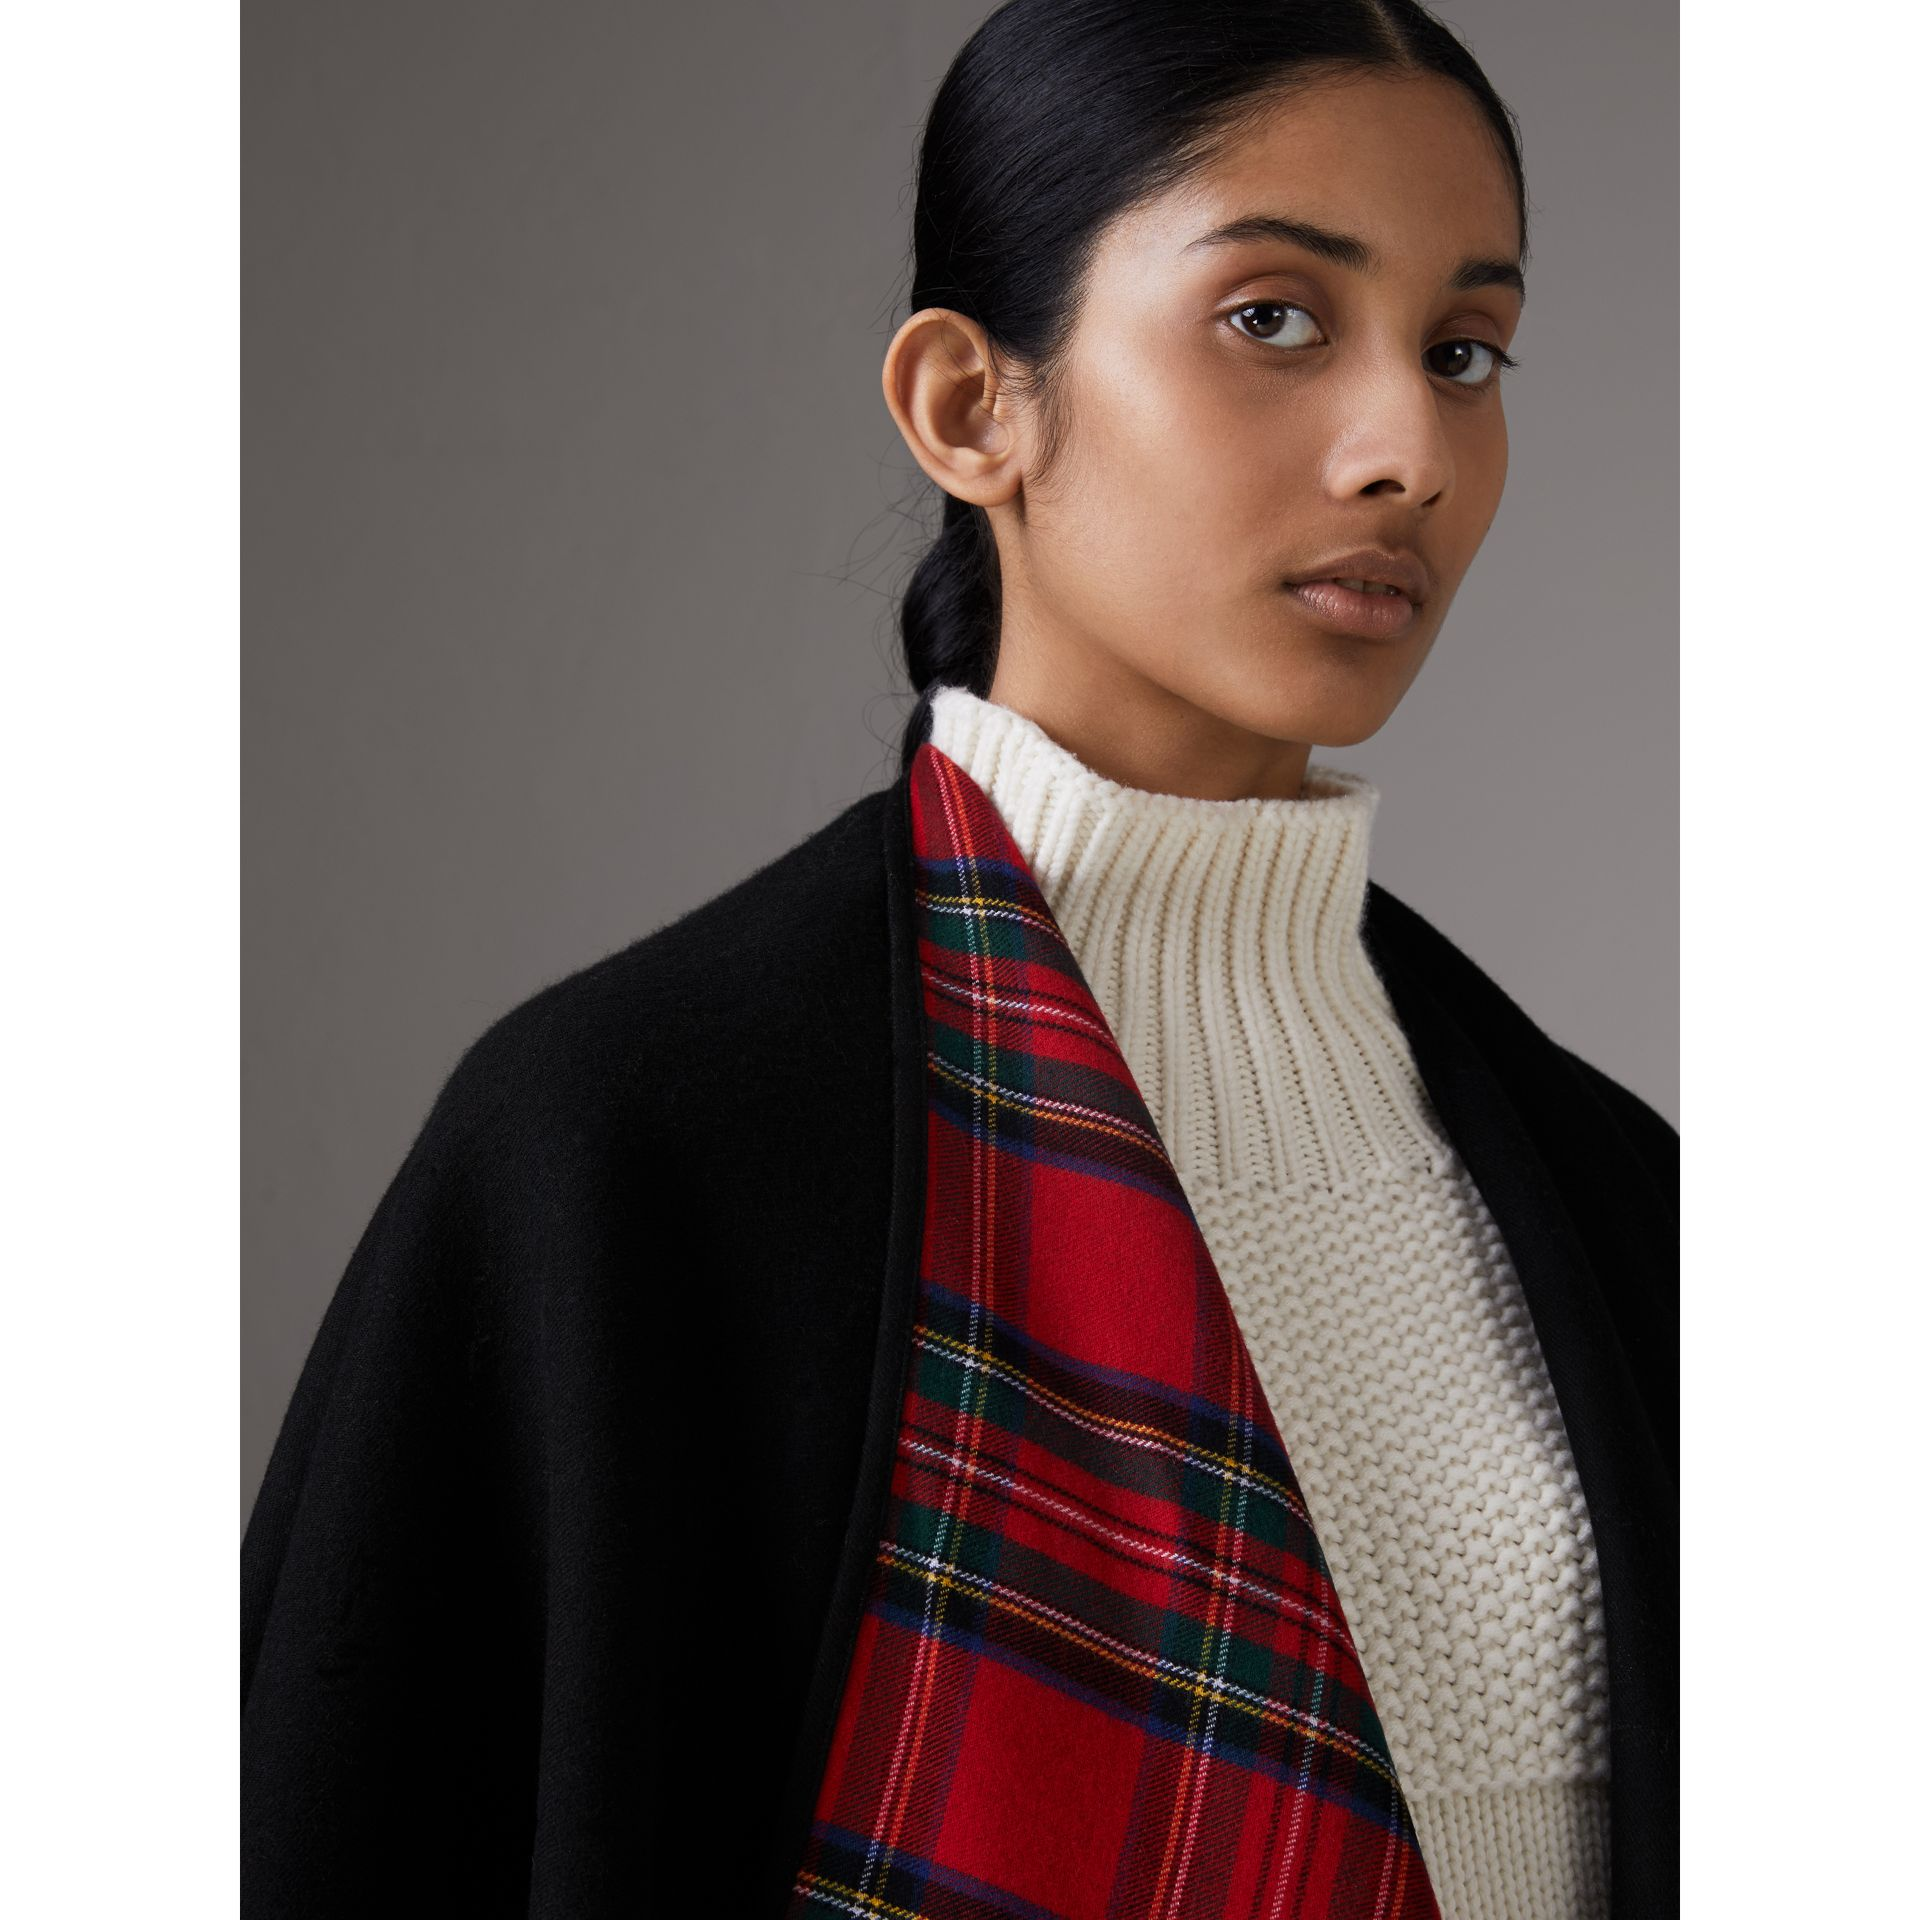 Poncho court réversible en laine tartan (Noir) | Burberry - photo de la galerie 4